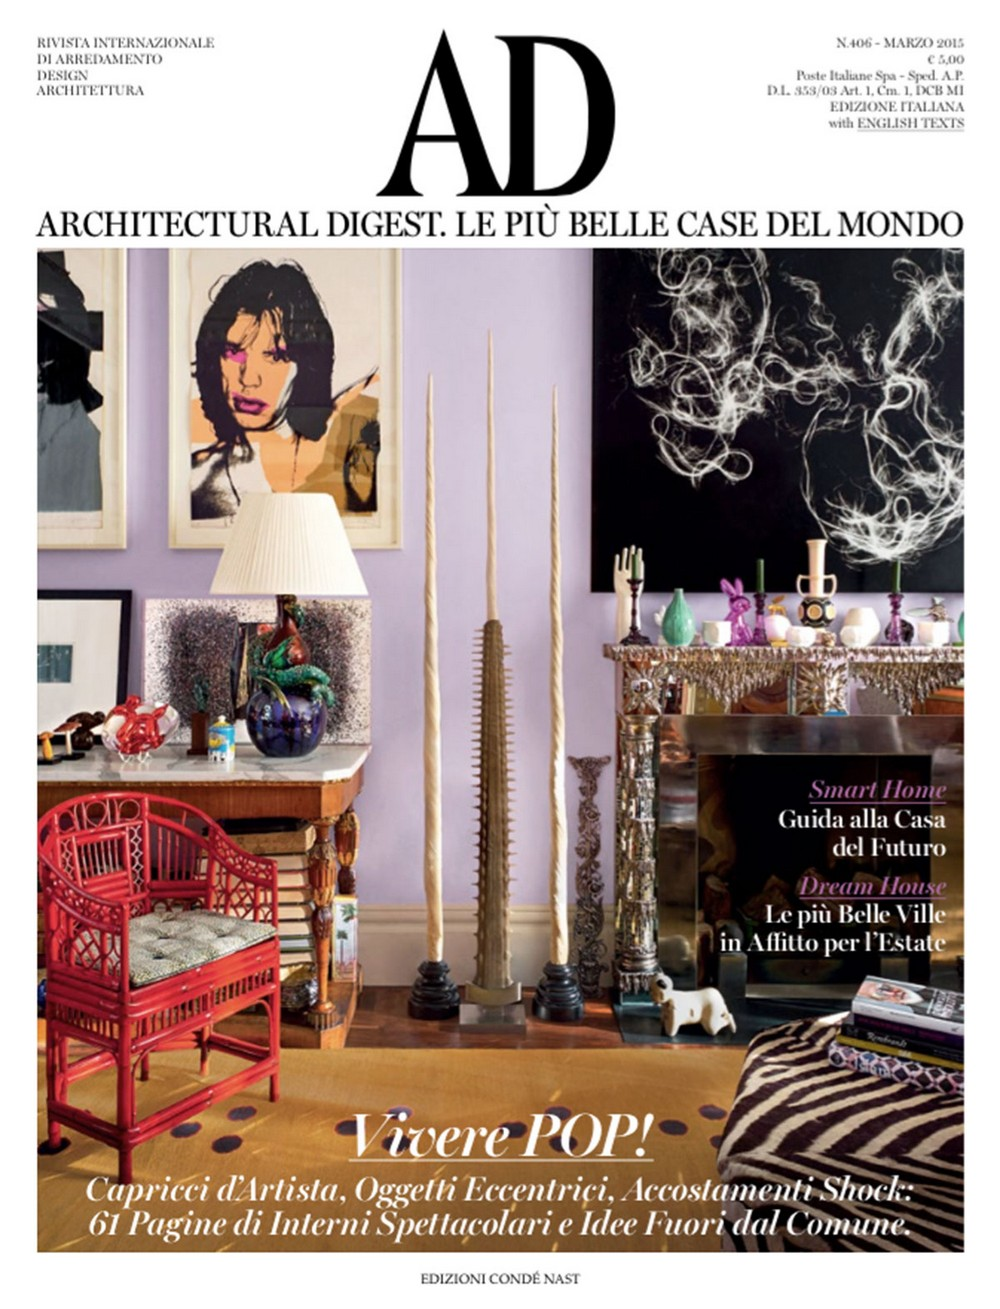 Top 15 Interior Design Magazines To Find In Maison et Objet 2019 maison et objet 2019 Top 15 Interior Design Magazines To Find In Maison et Objet 2019 Top 15 Interior Design Magazines To Find In Maison et Objet 2019 4